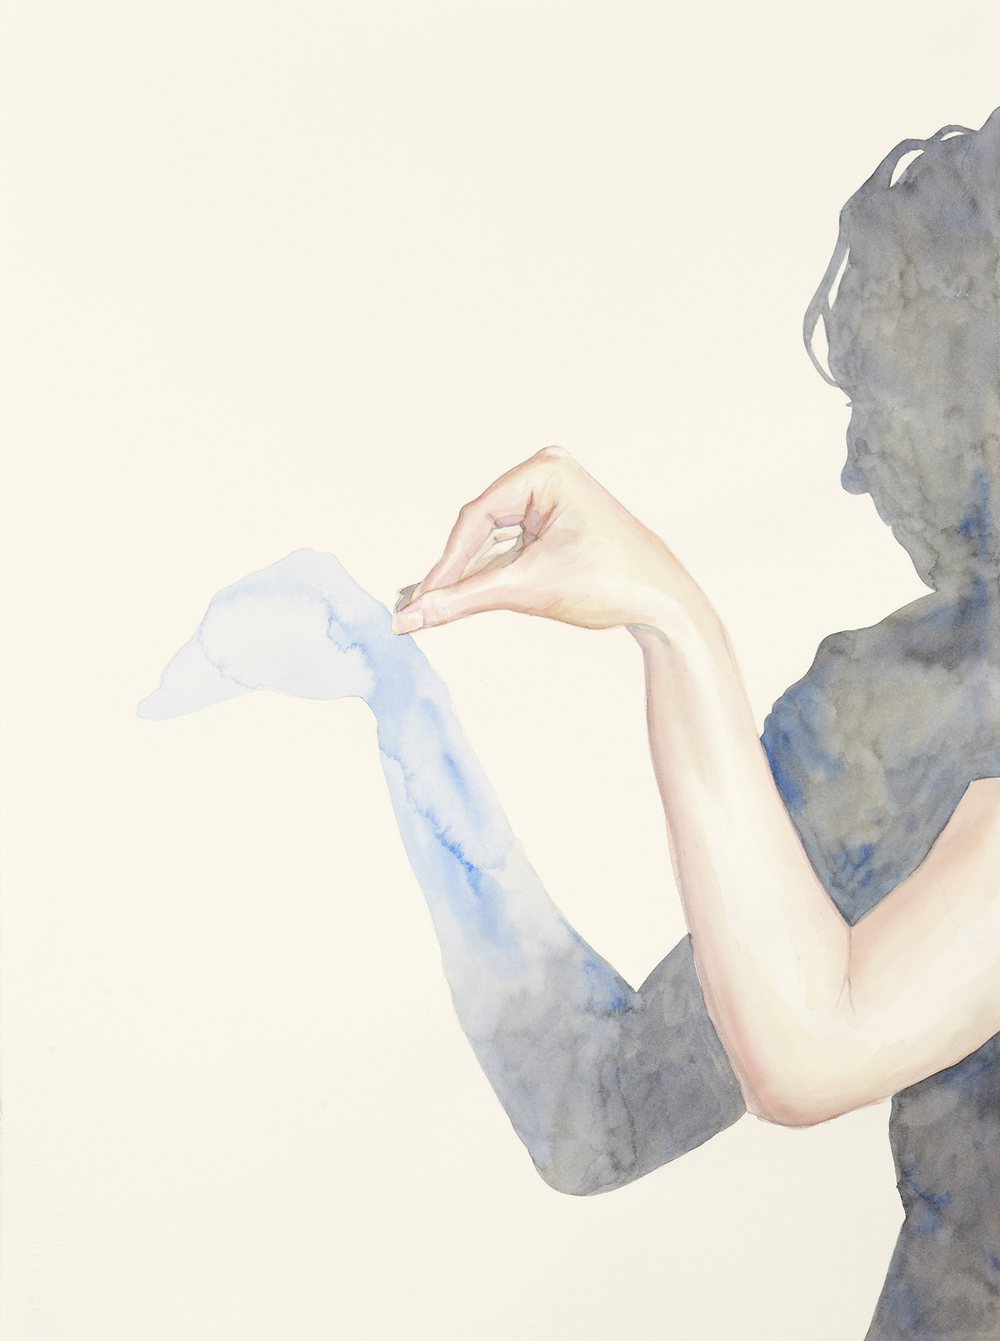 Five, 2011, Watercolour on paper, 56 x 76 cm, Photo: Sam Scoufos